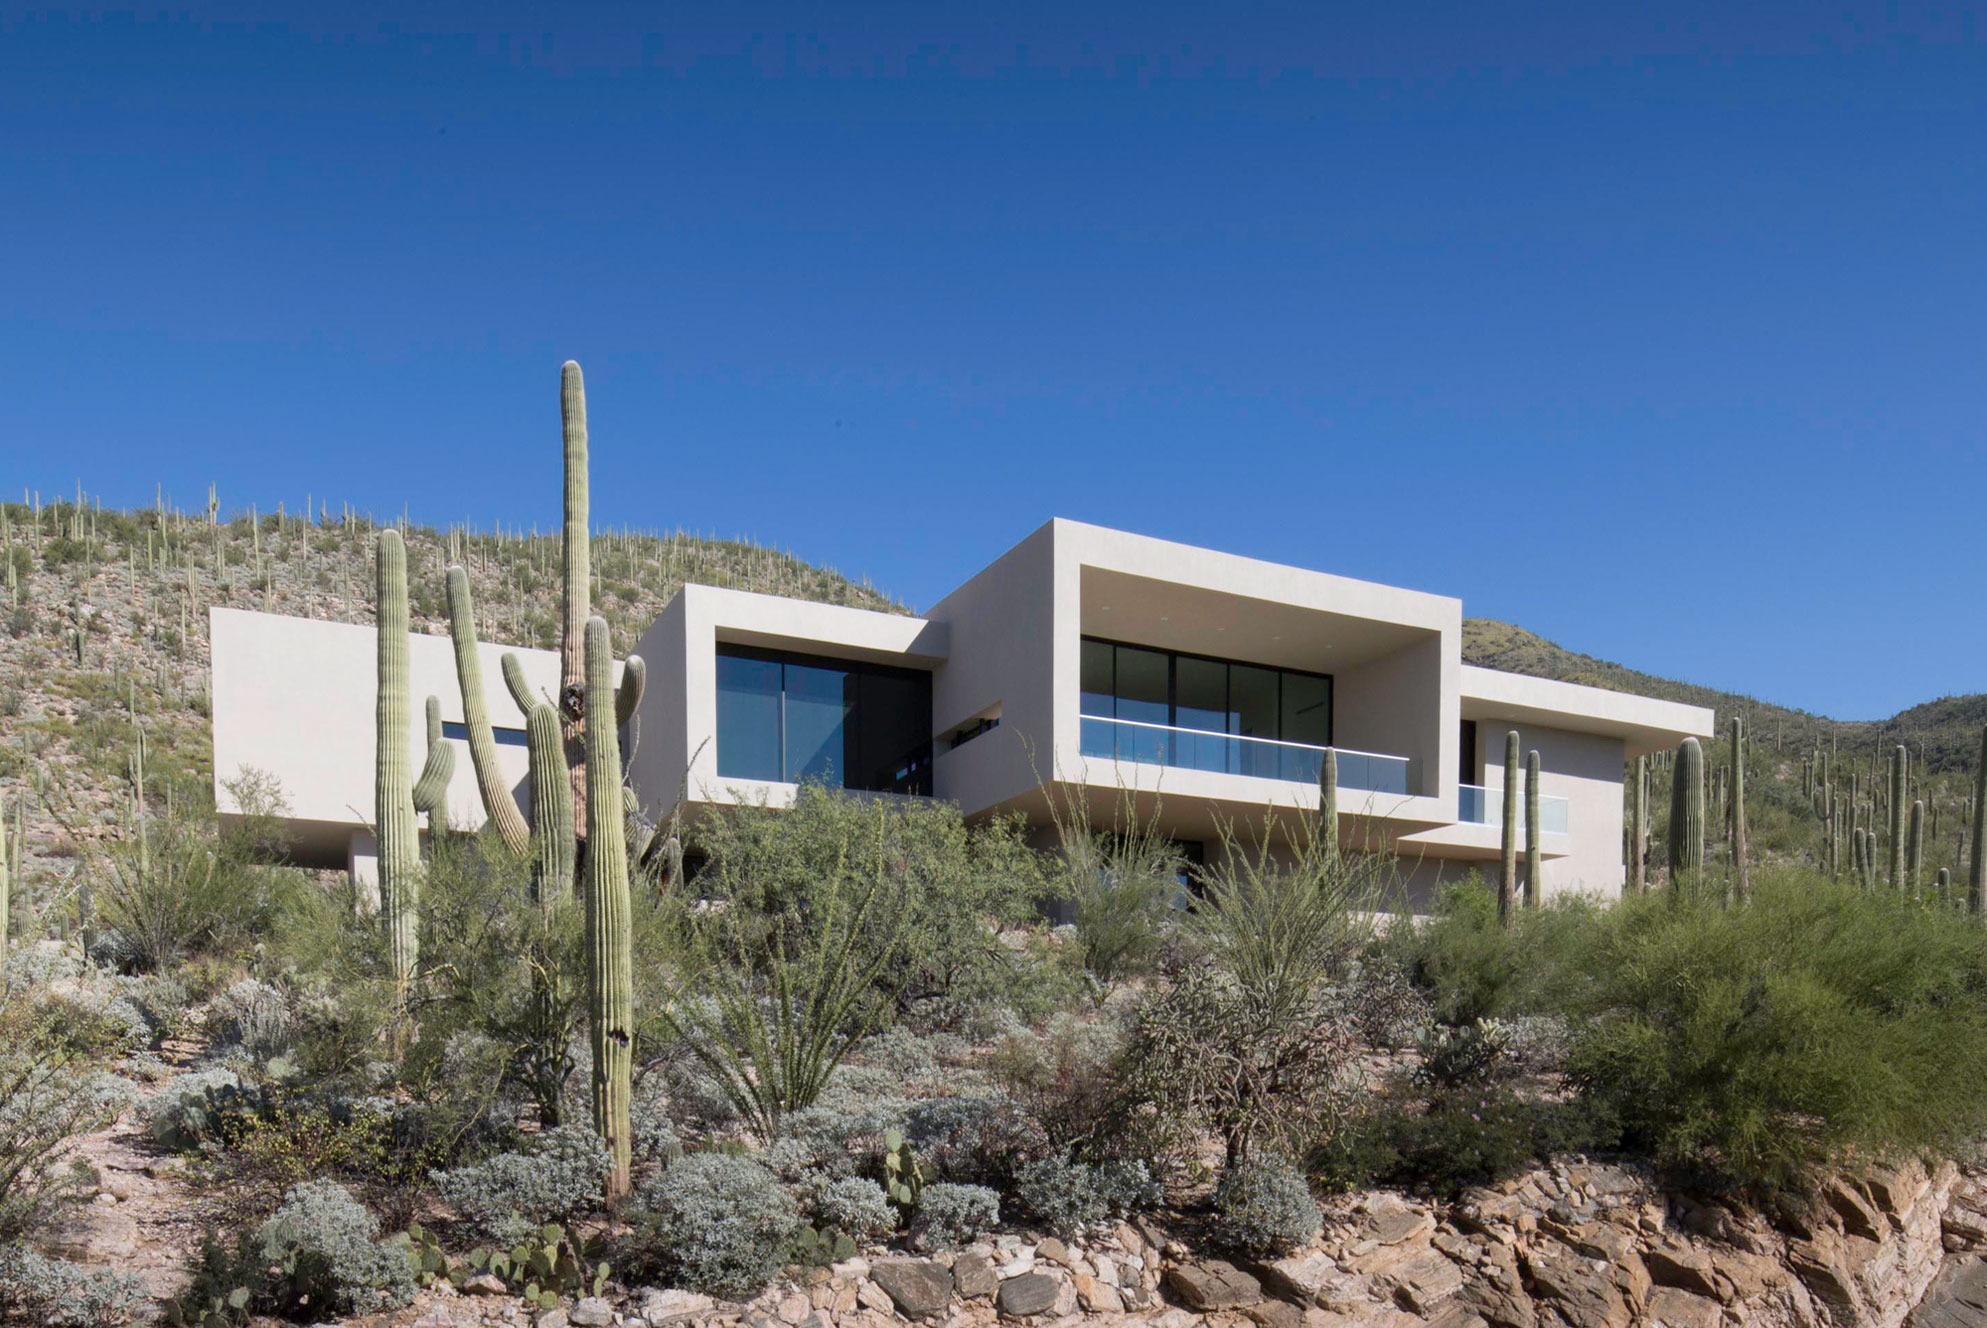 Stunning Kevin B Howard Architects Design a House in the Foothills of Tucson Arizona